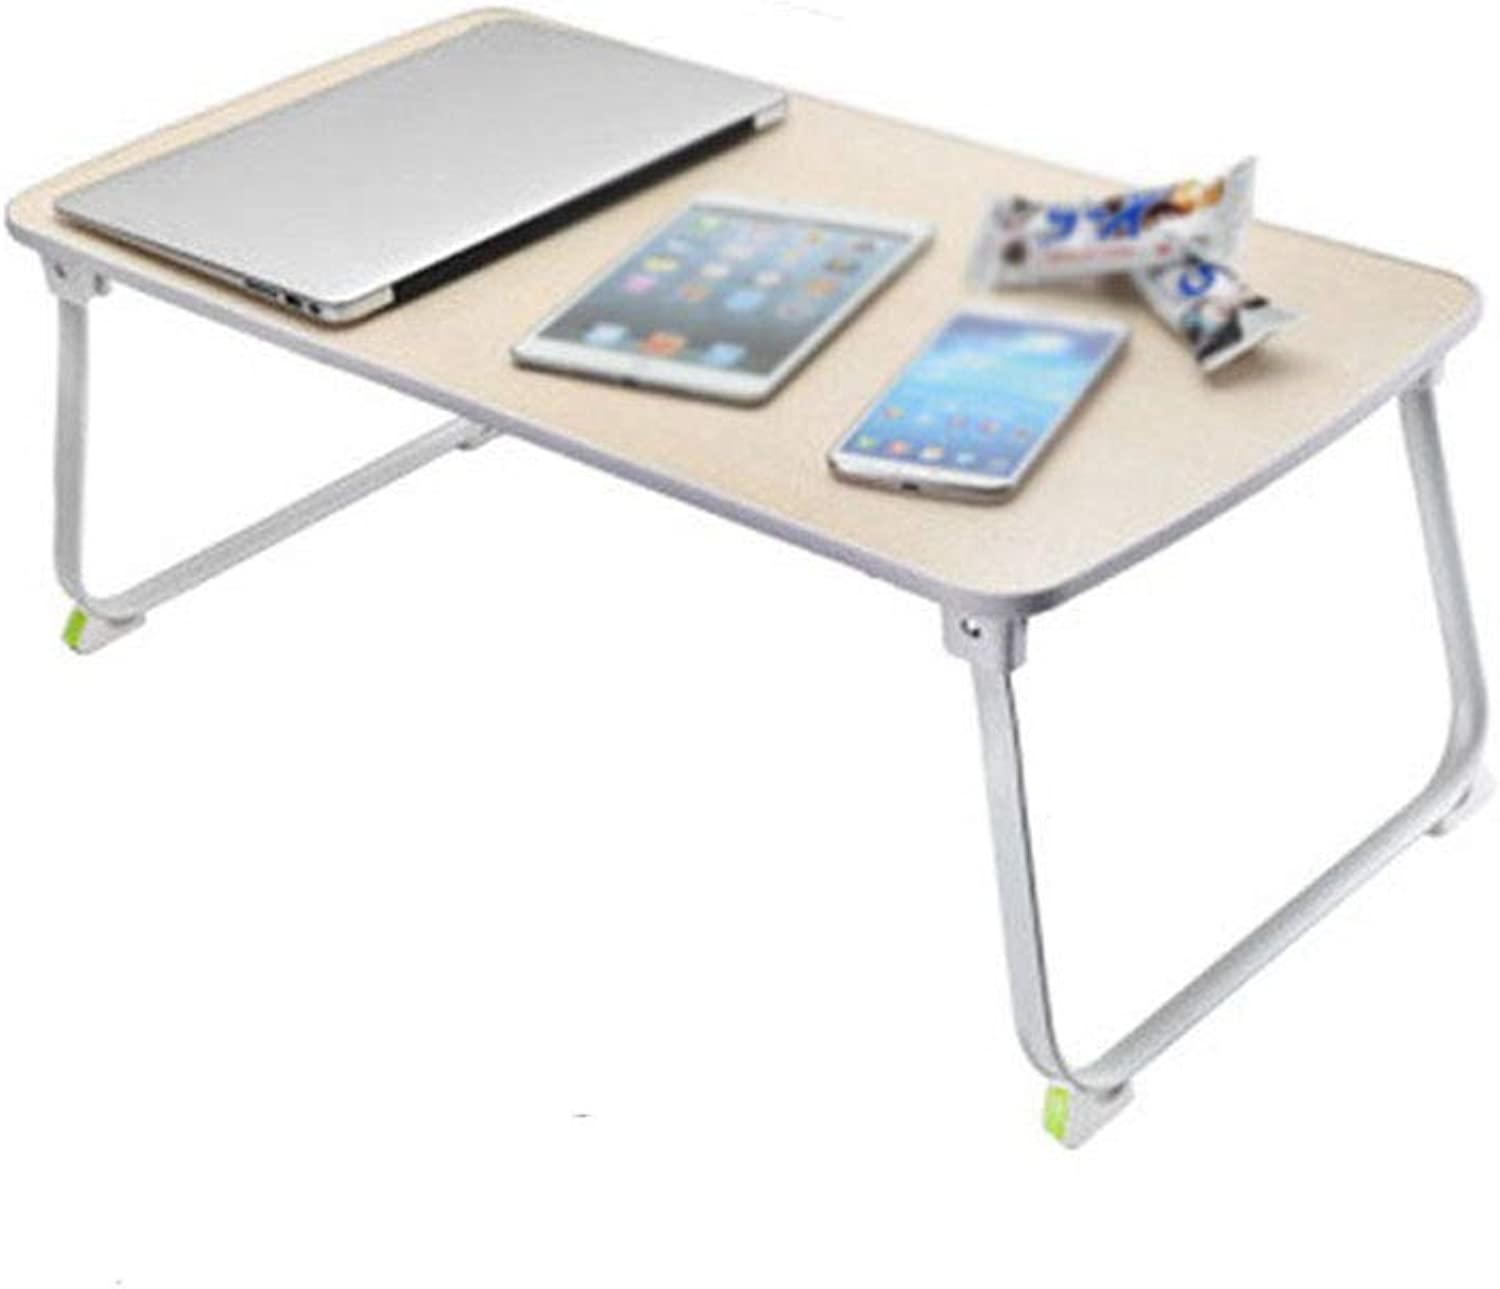 Table, Bed with Desk, Multi-Function Lazy Table, Laptop Folding Table, Stable, Light, Small Table Portable Table (color   D)